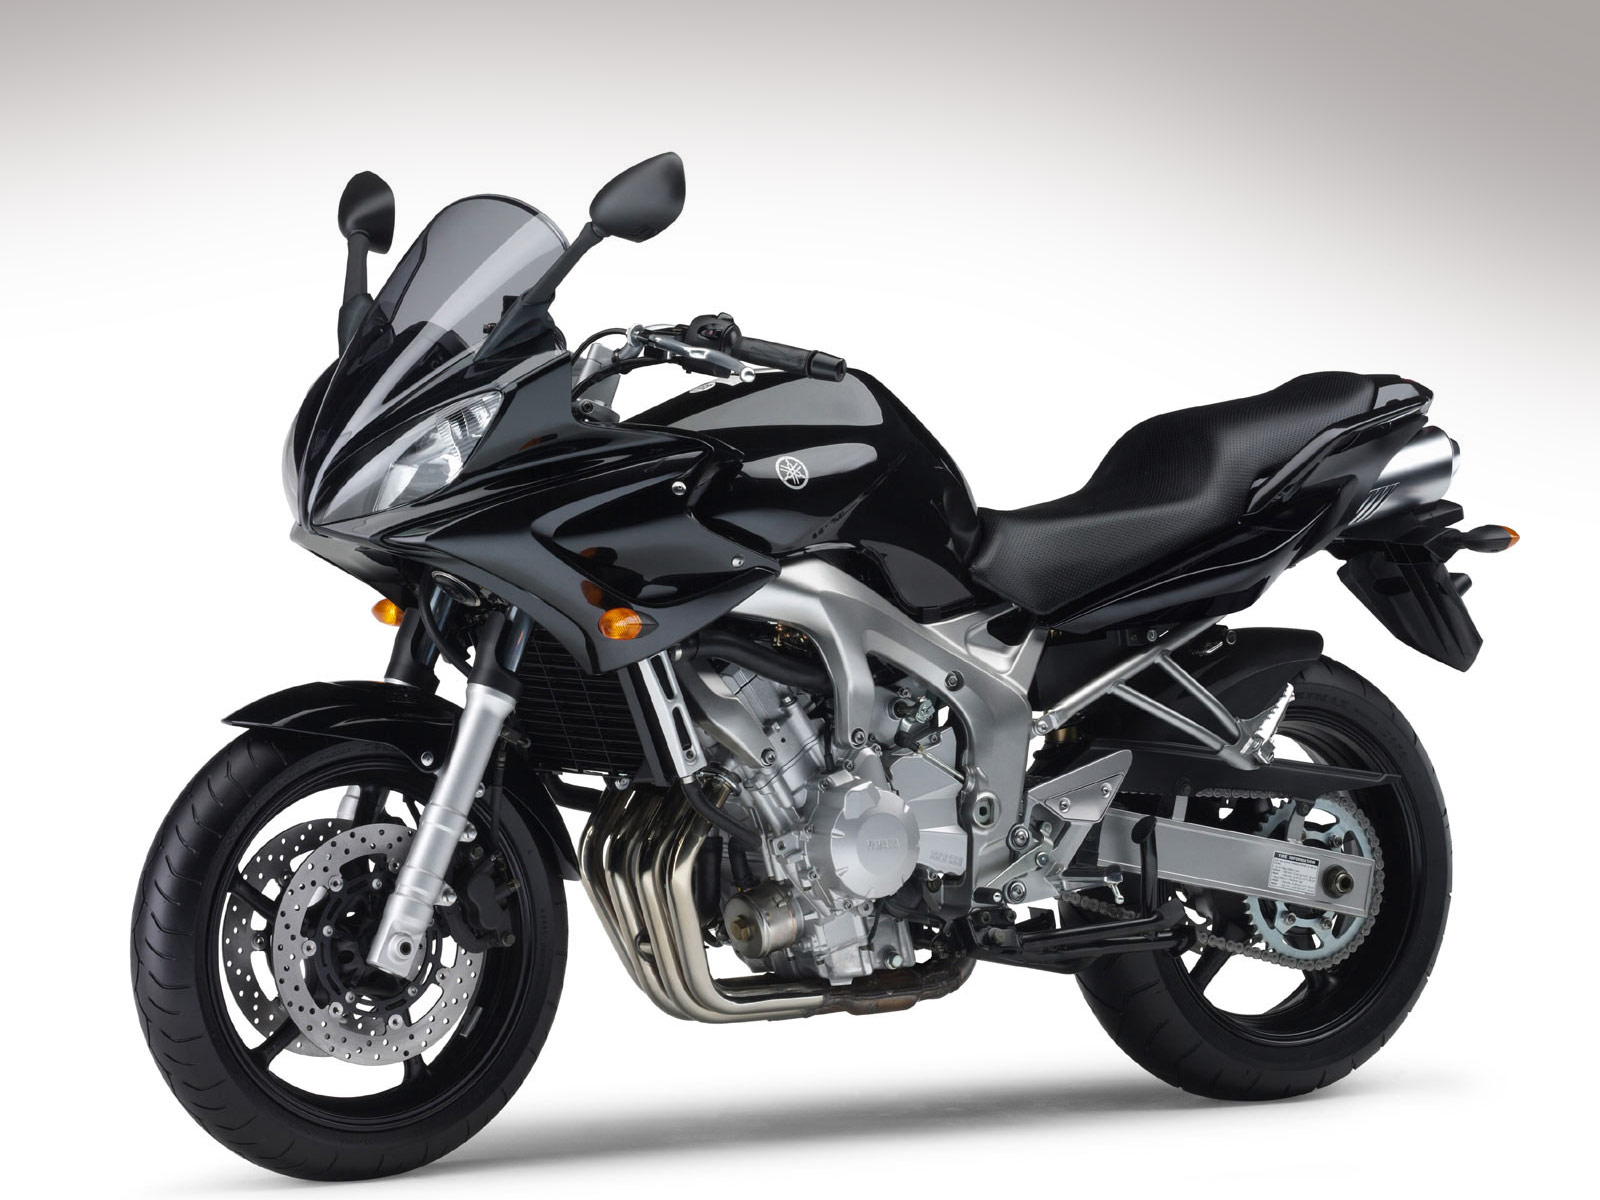 2007 yamaha fz6 review specifications pictures. Black Bedroom Furniture Sets. Home Design Ideas